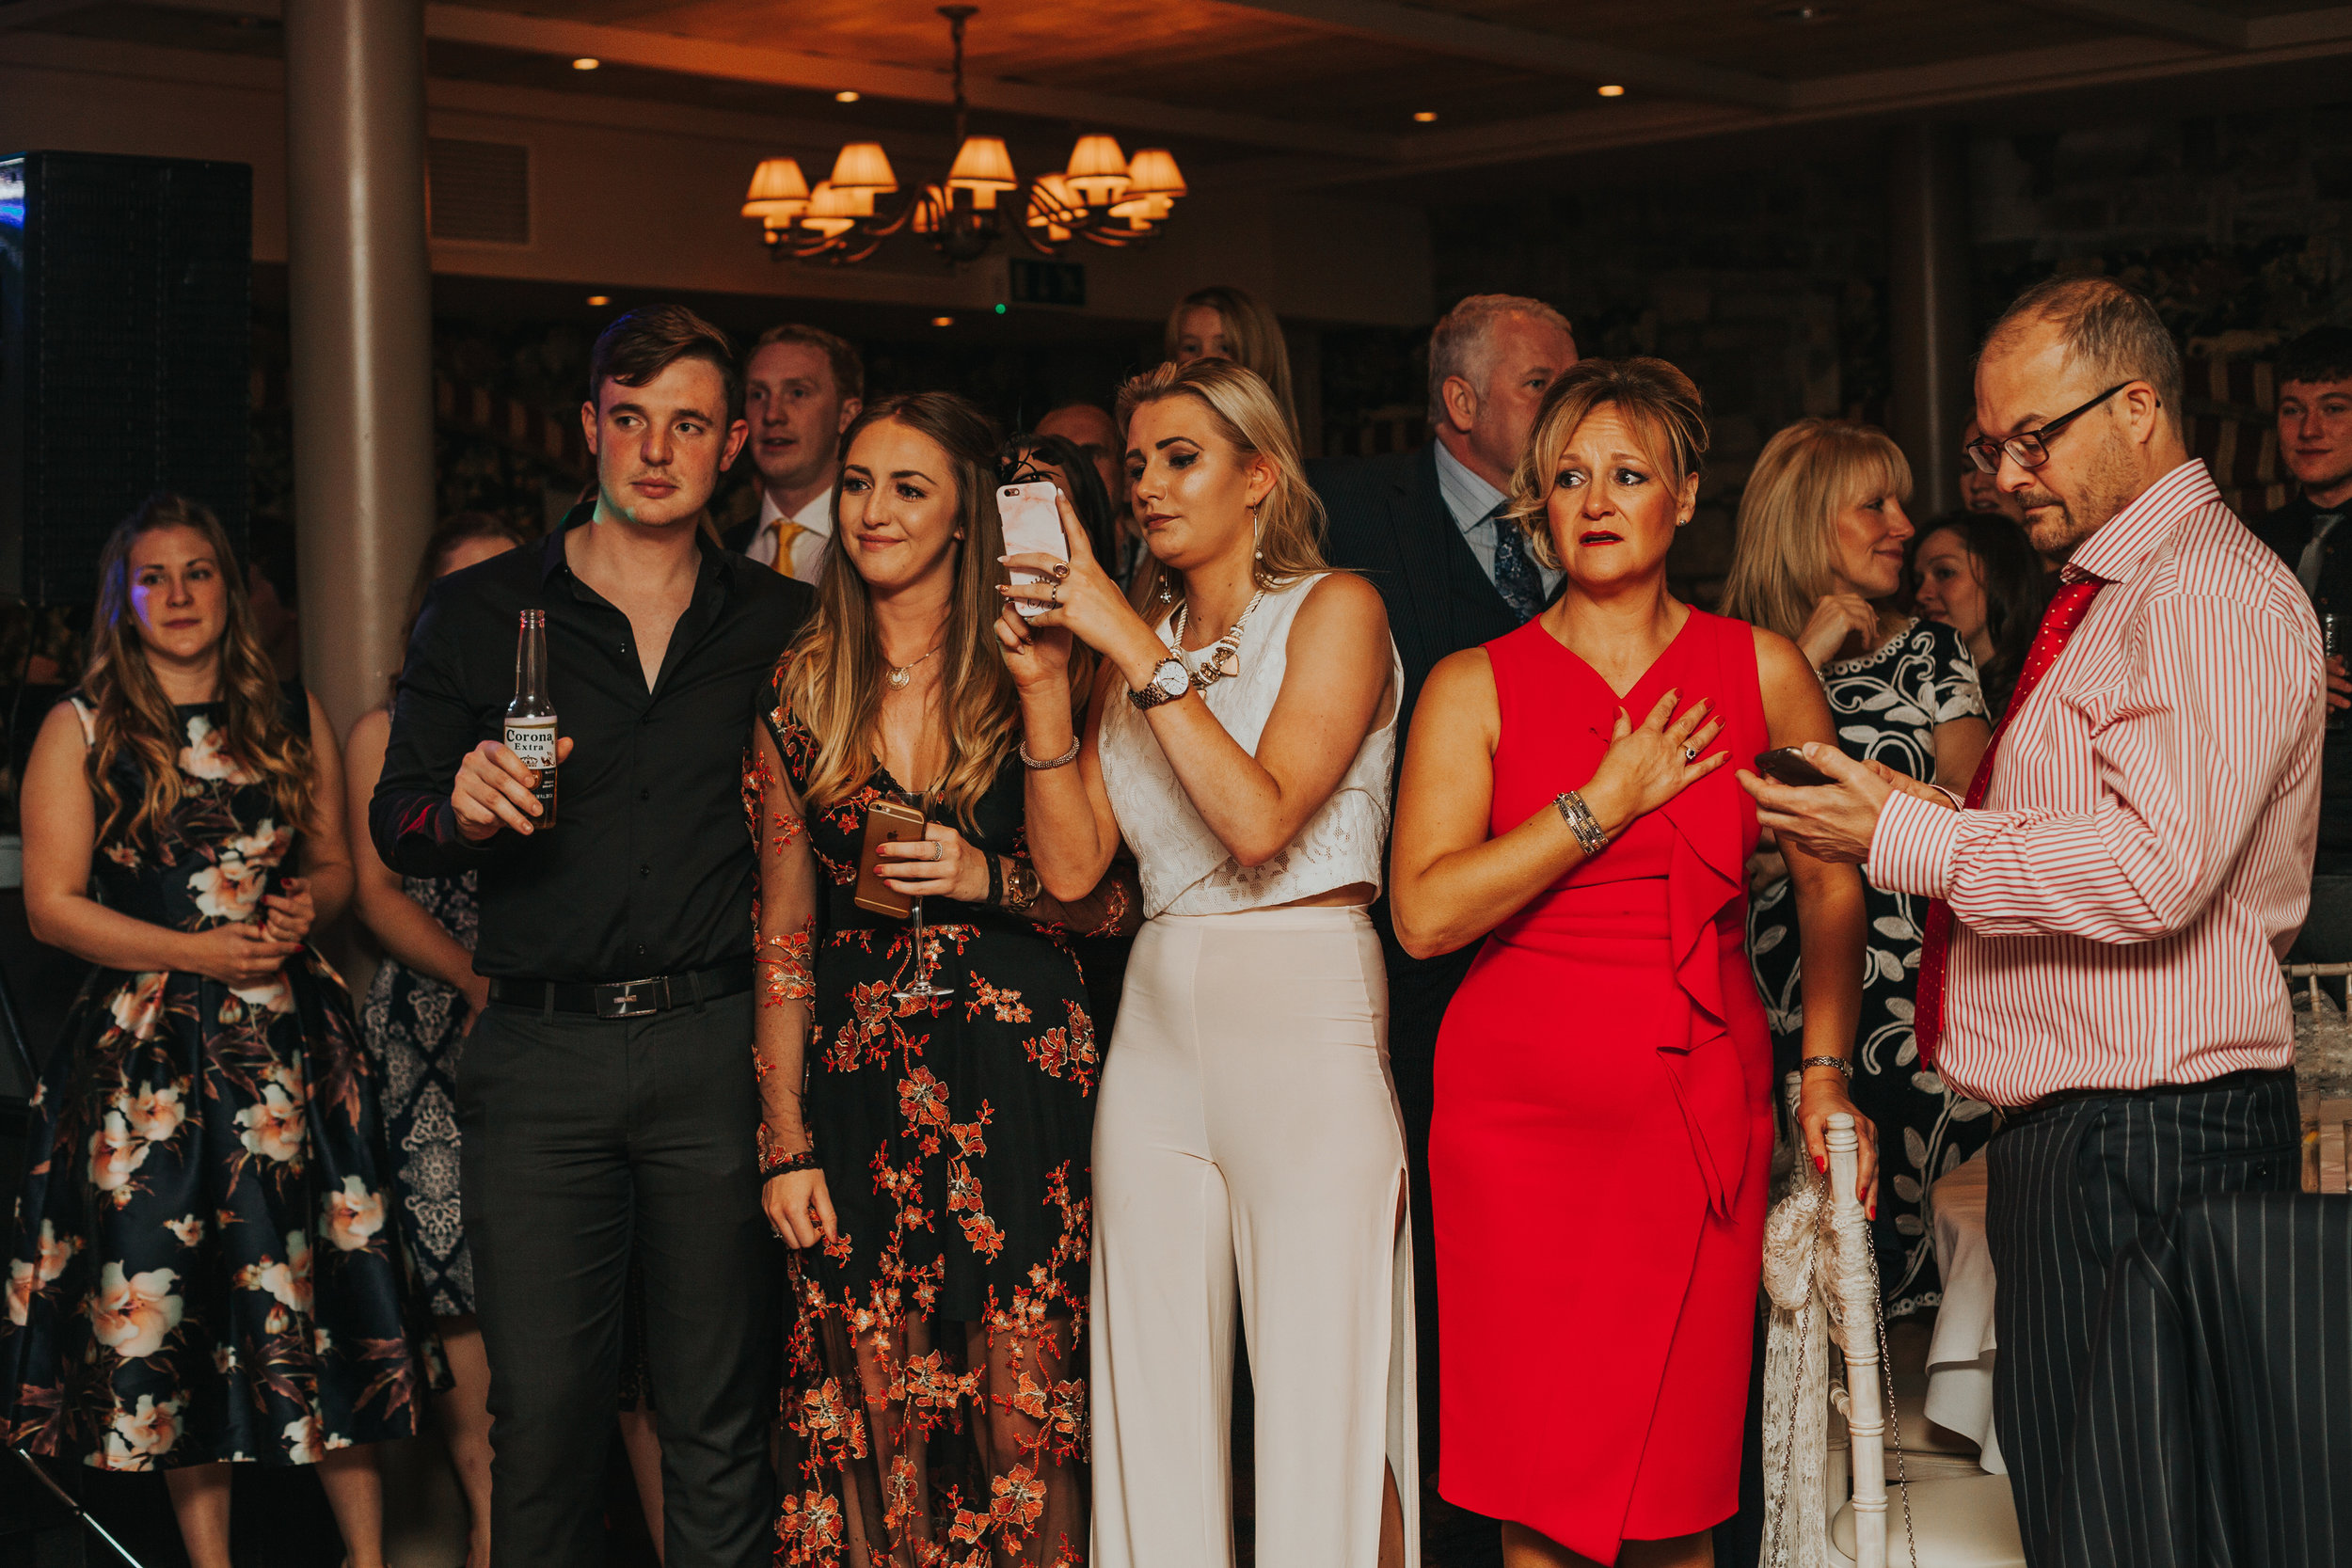 Wedding guests watch the dance getting emotional.